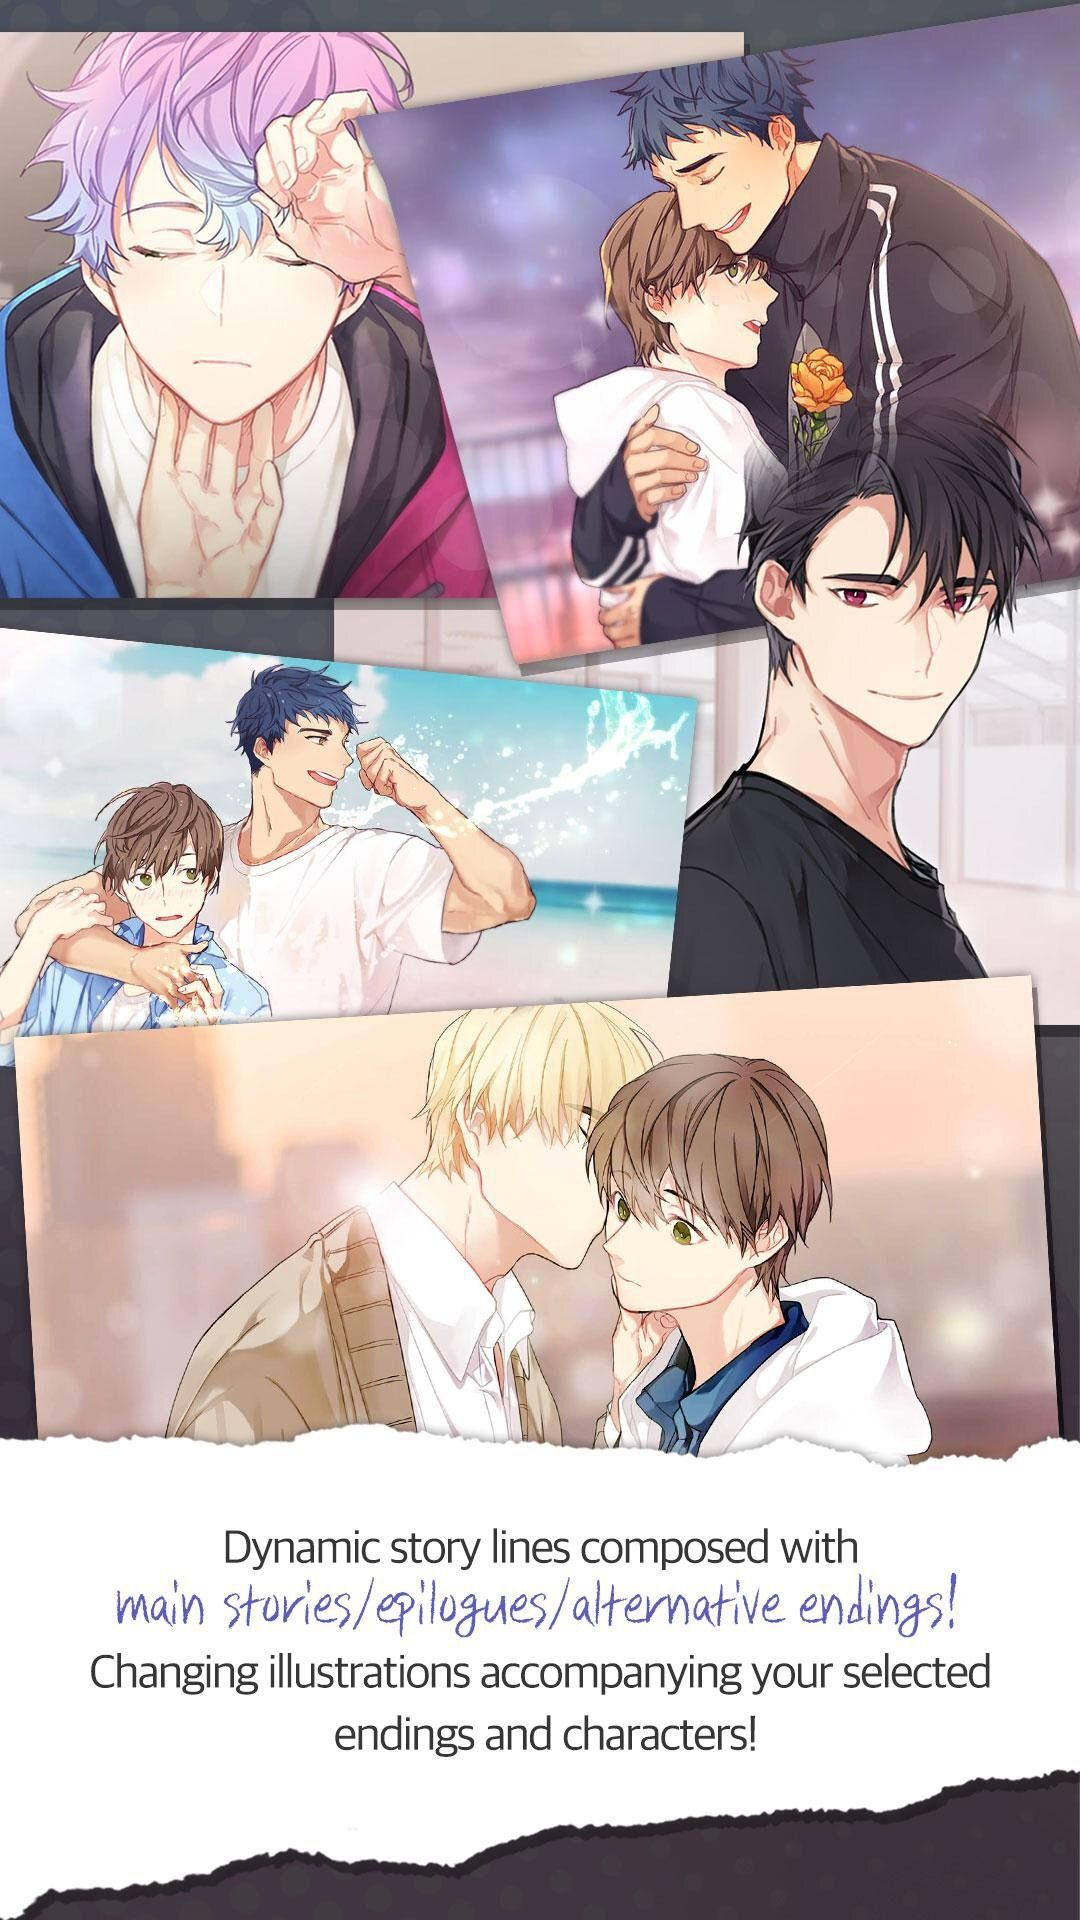 Ikemen Fangirl English Otome Game App With Korean Voice My Romantic Games Game App Anime